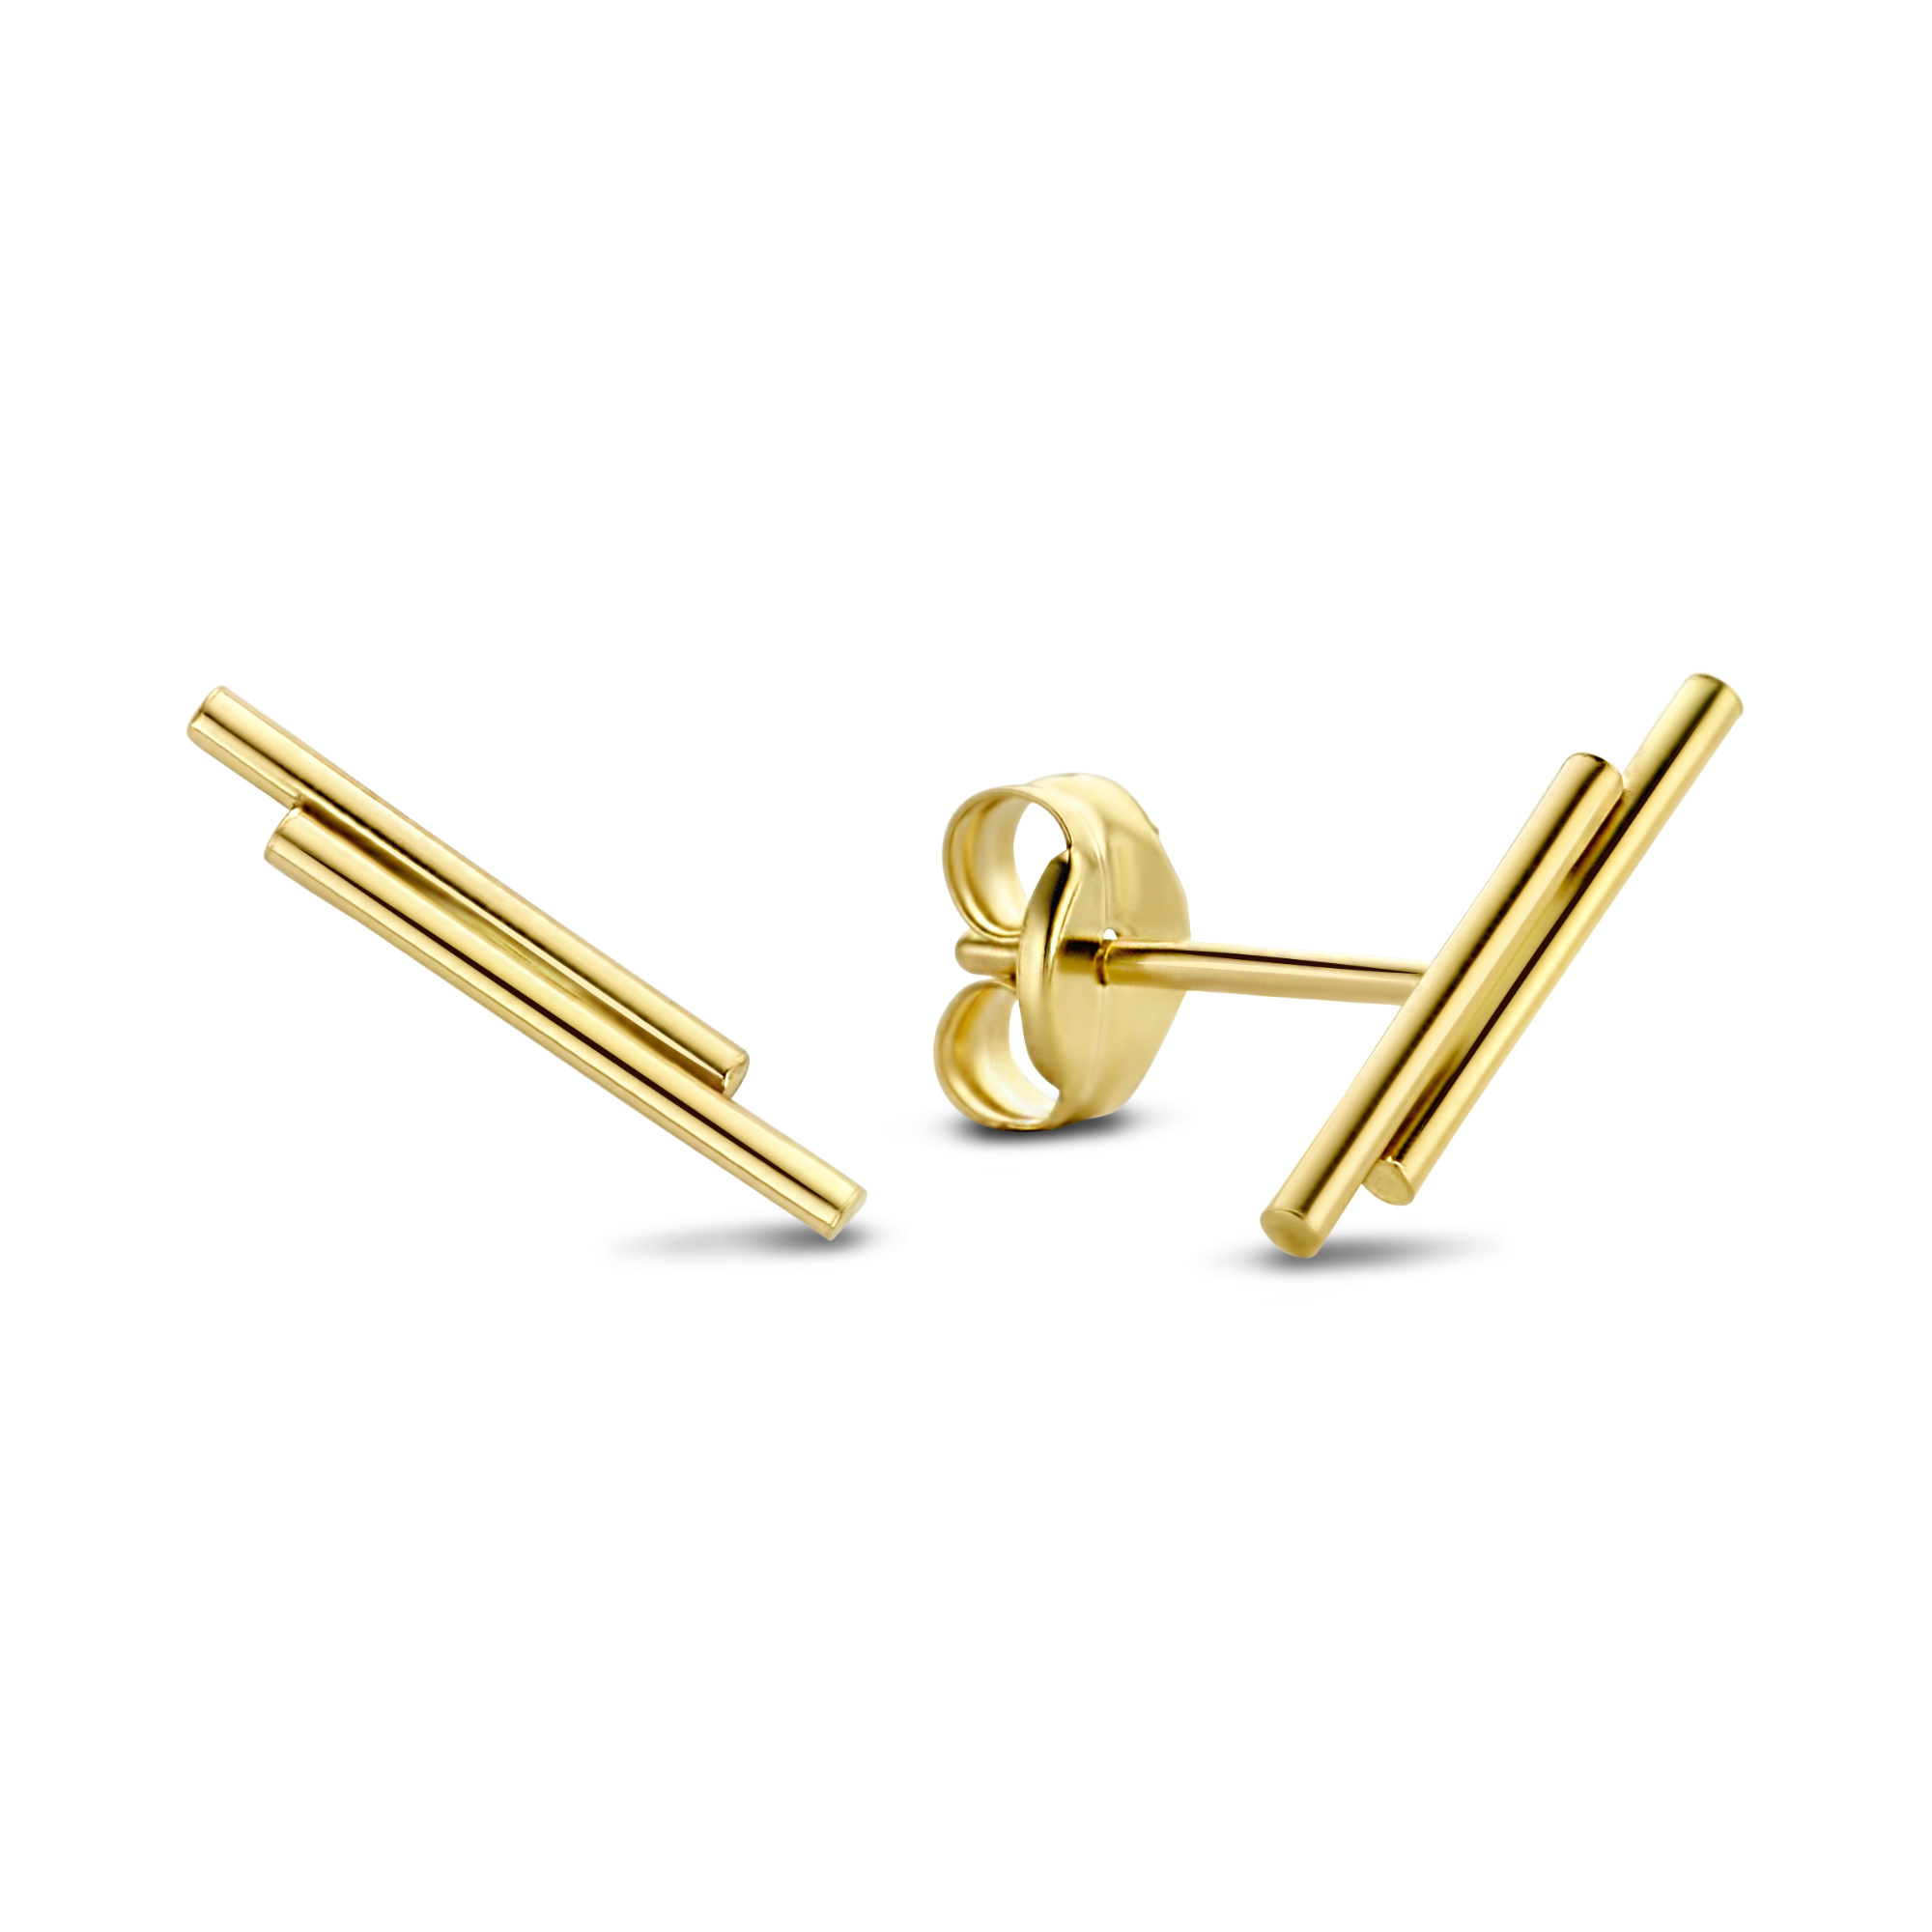 Isabel Bernard Le Marais 14 carat gold double tube stud earrings